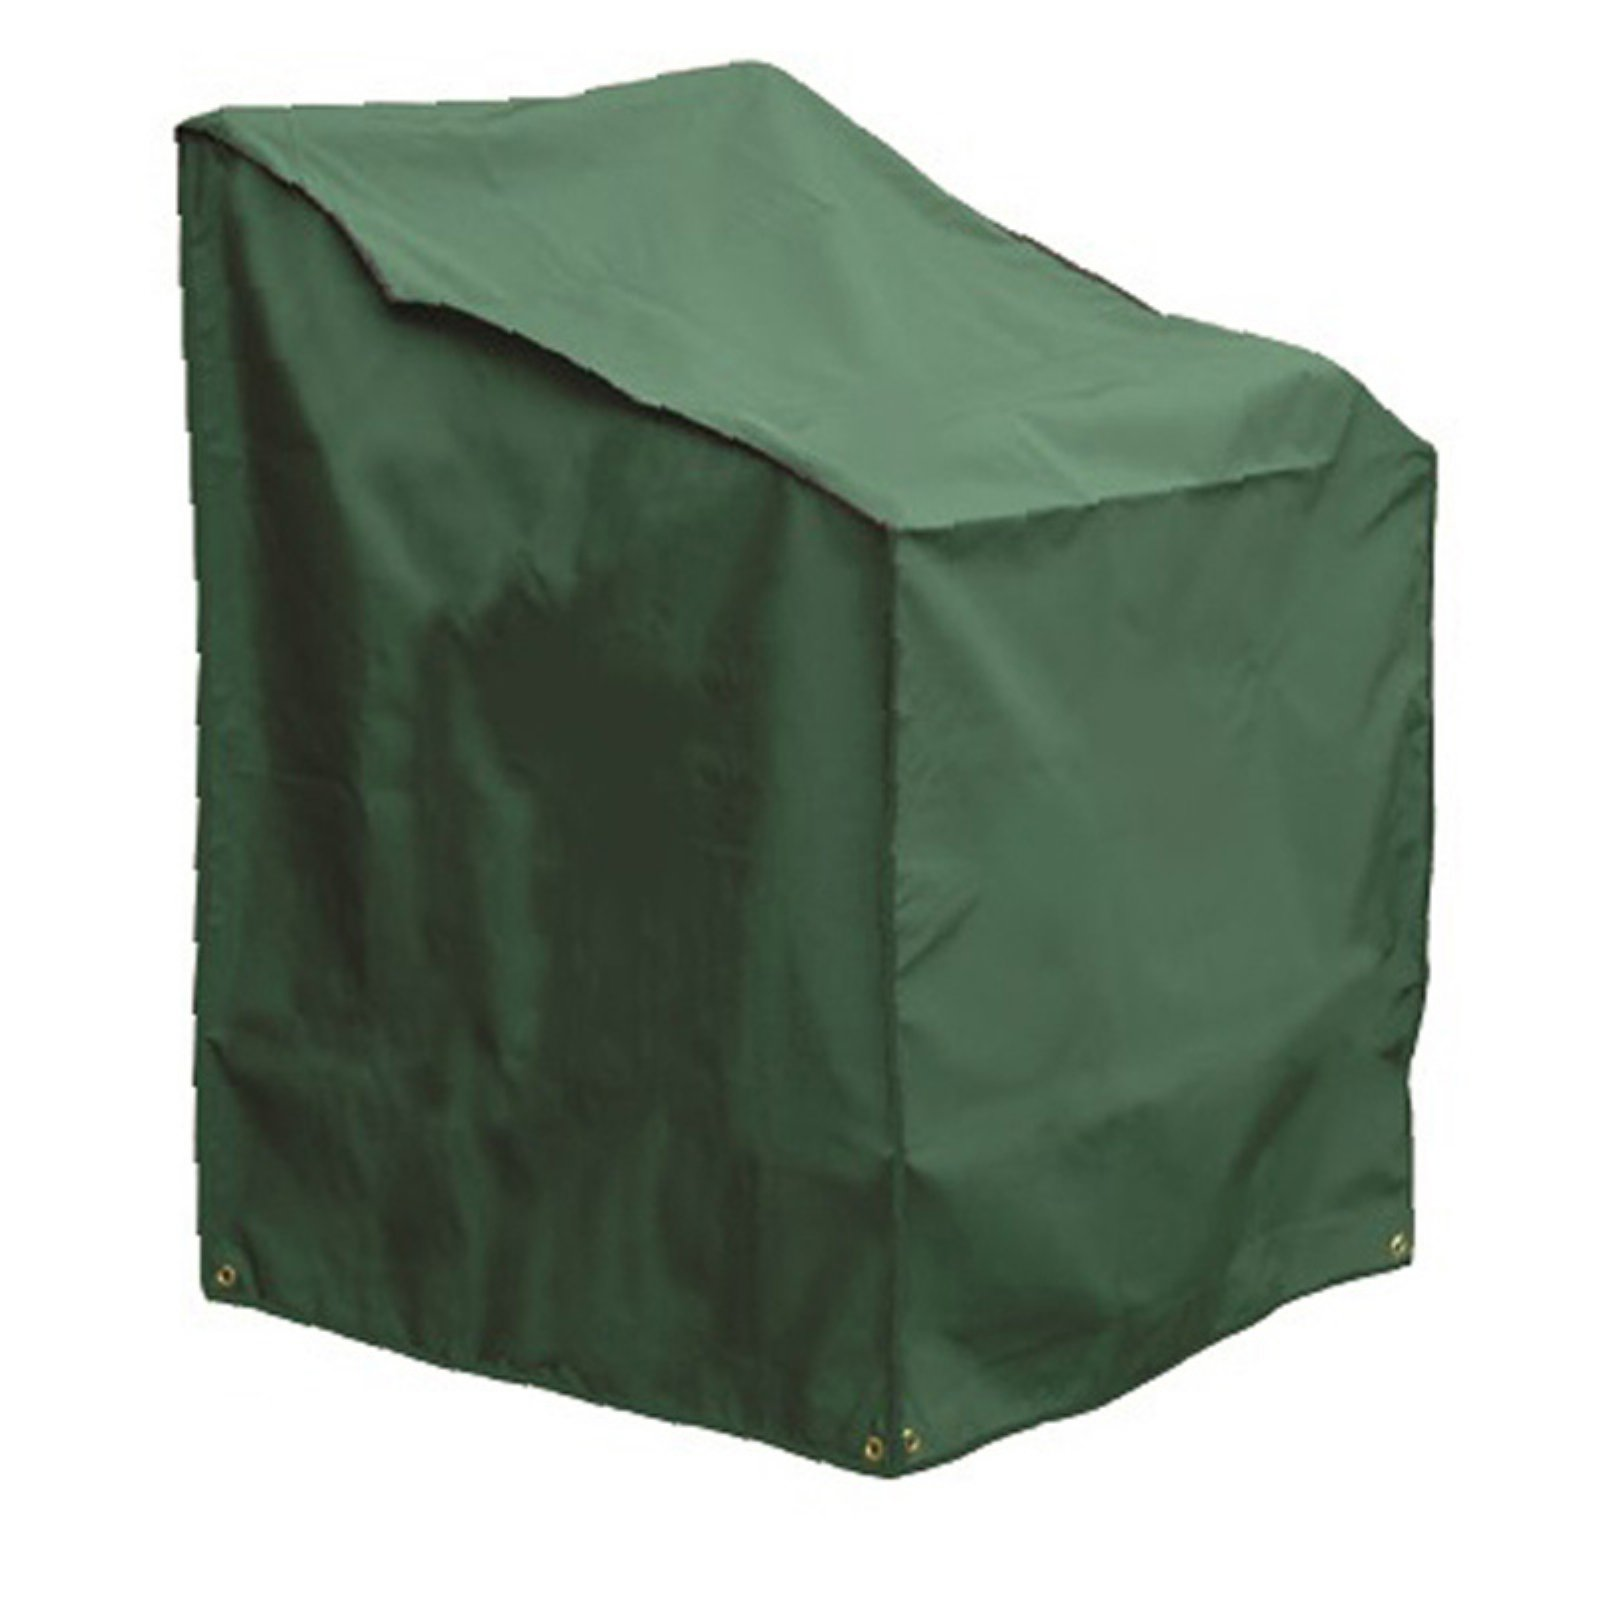 Bosmere 30W x 32D x 31H in. Outdoor Chair Cover